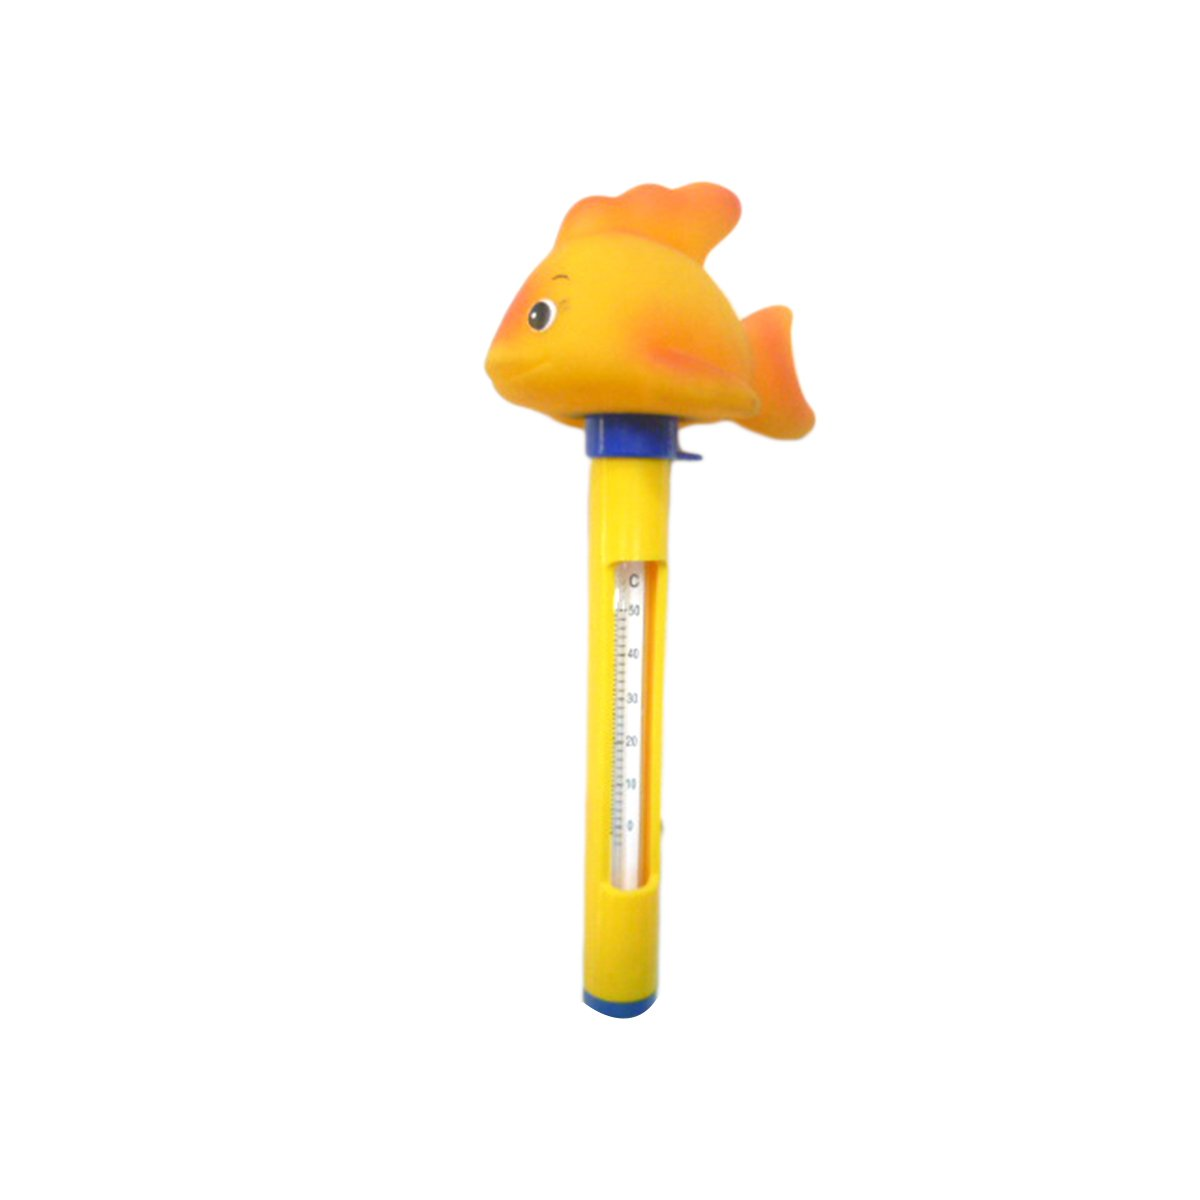 OUNONA Cute Animal Floating Pool Thermometer with String Indoor Outdoor Use for Swimming Pools Aquariums Hot Tub Spa Jacuzzi (Yellow)